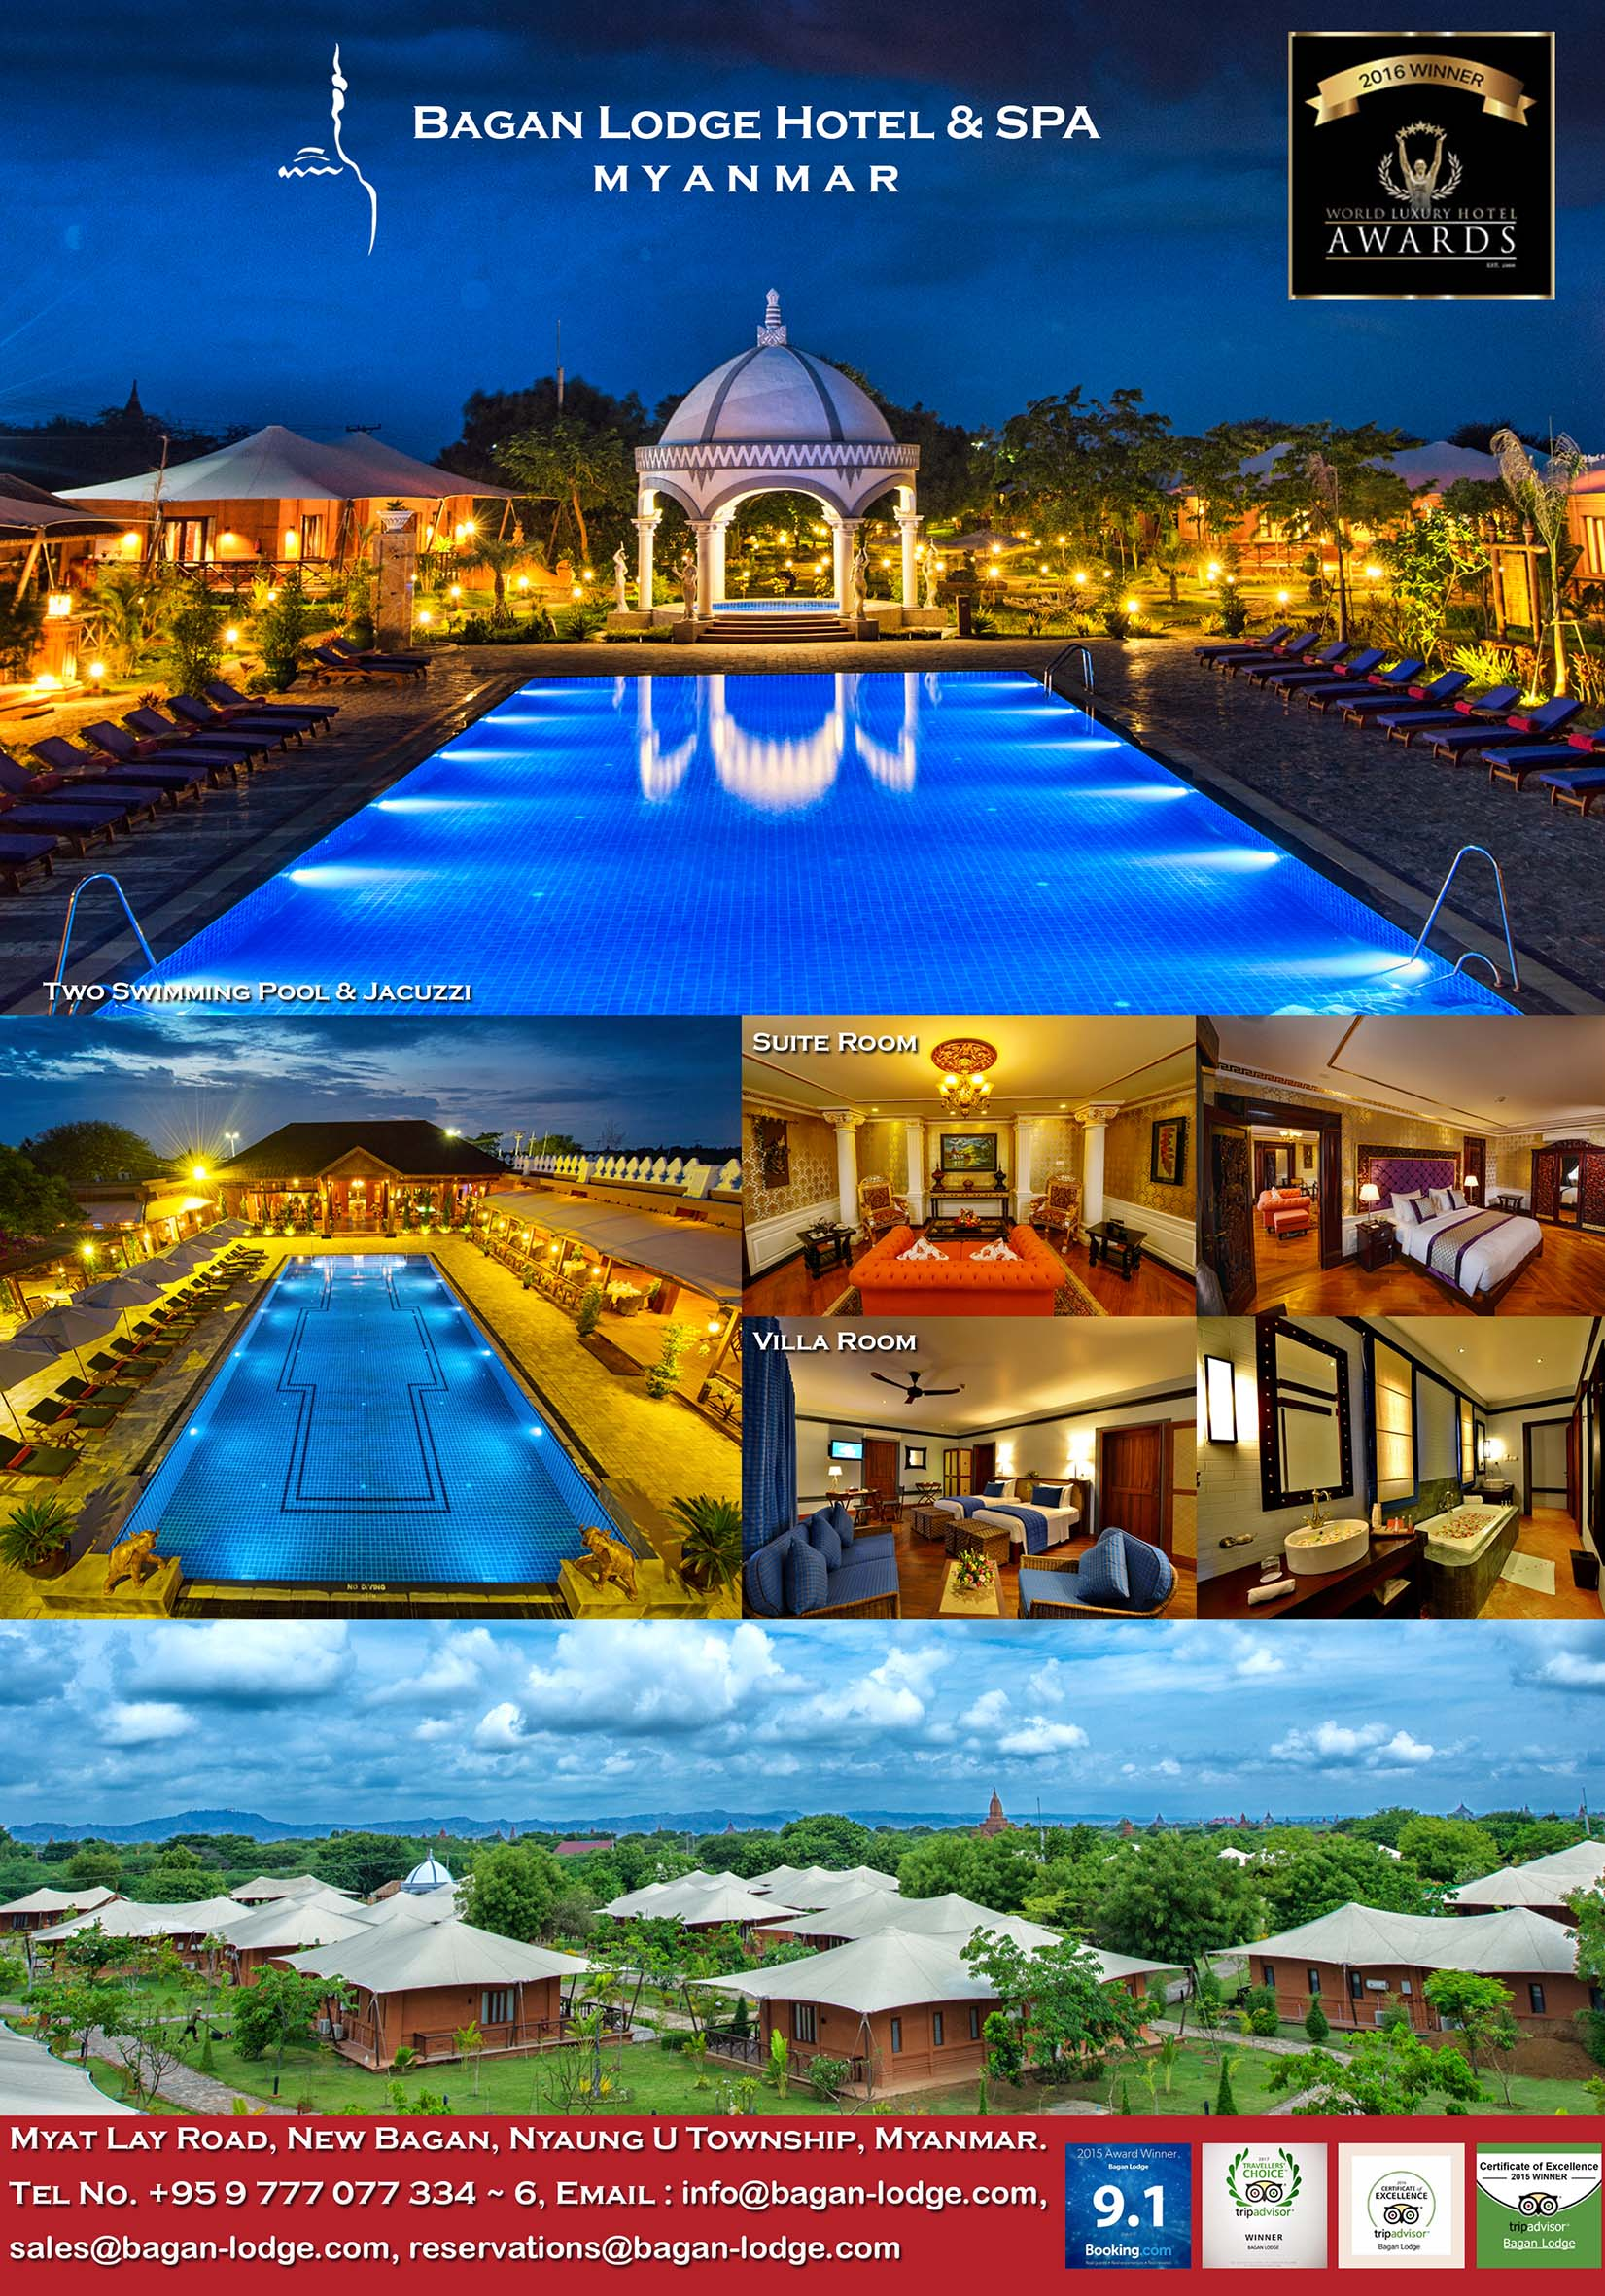 Bagan Lodge Hotel & Spa